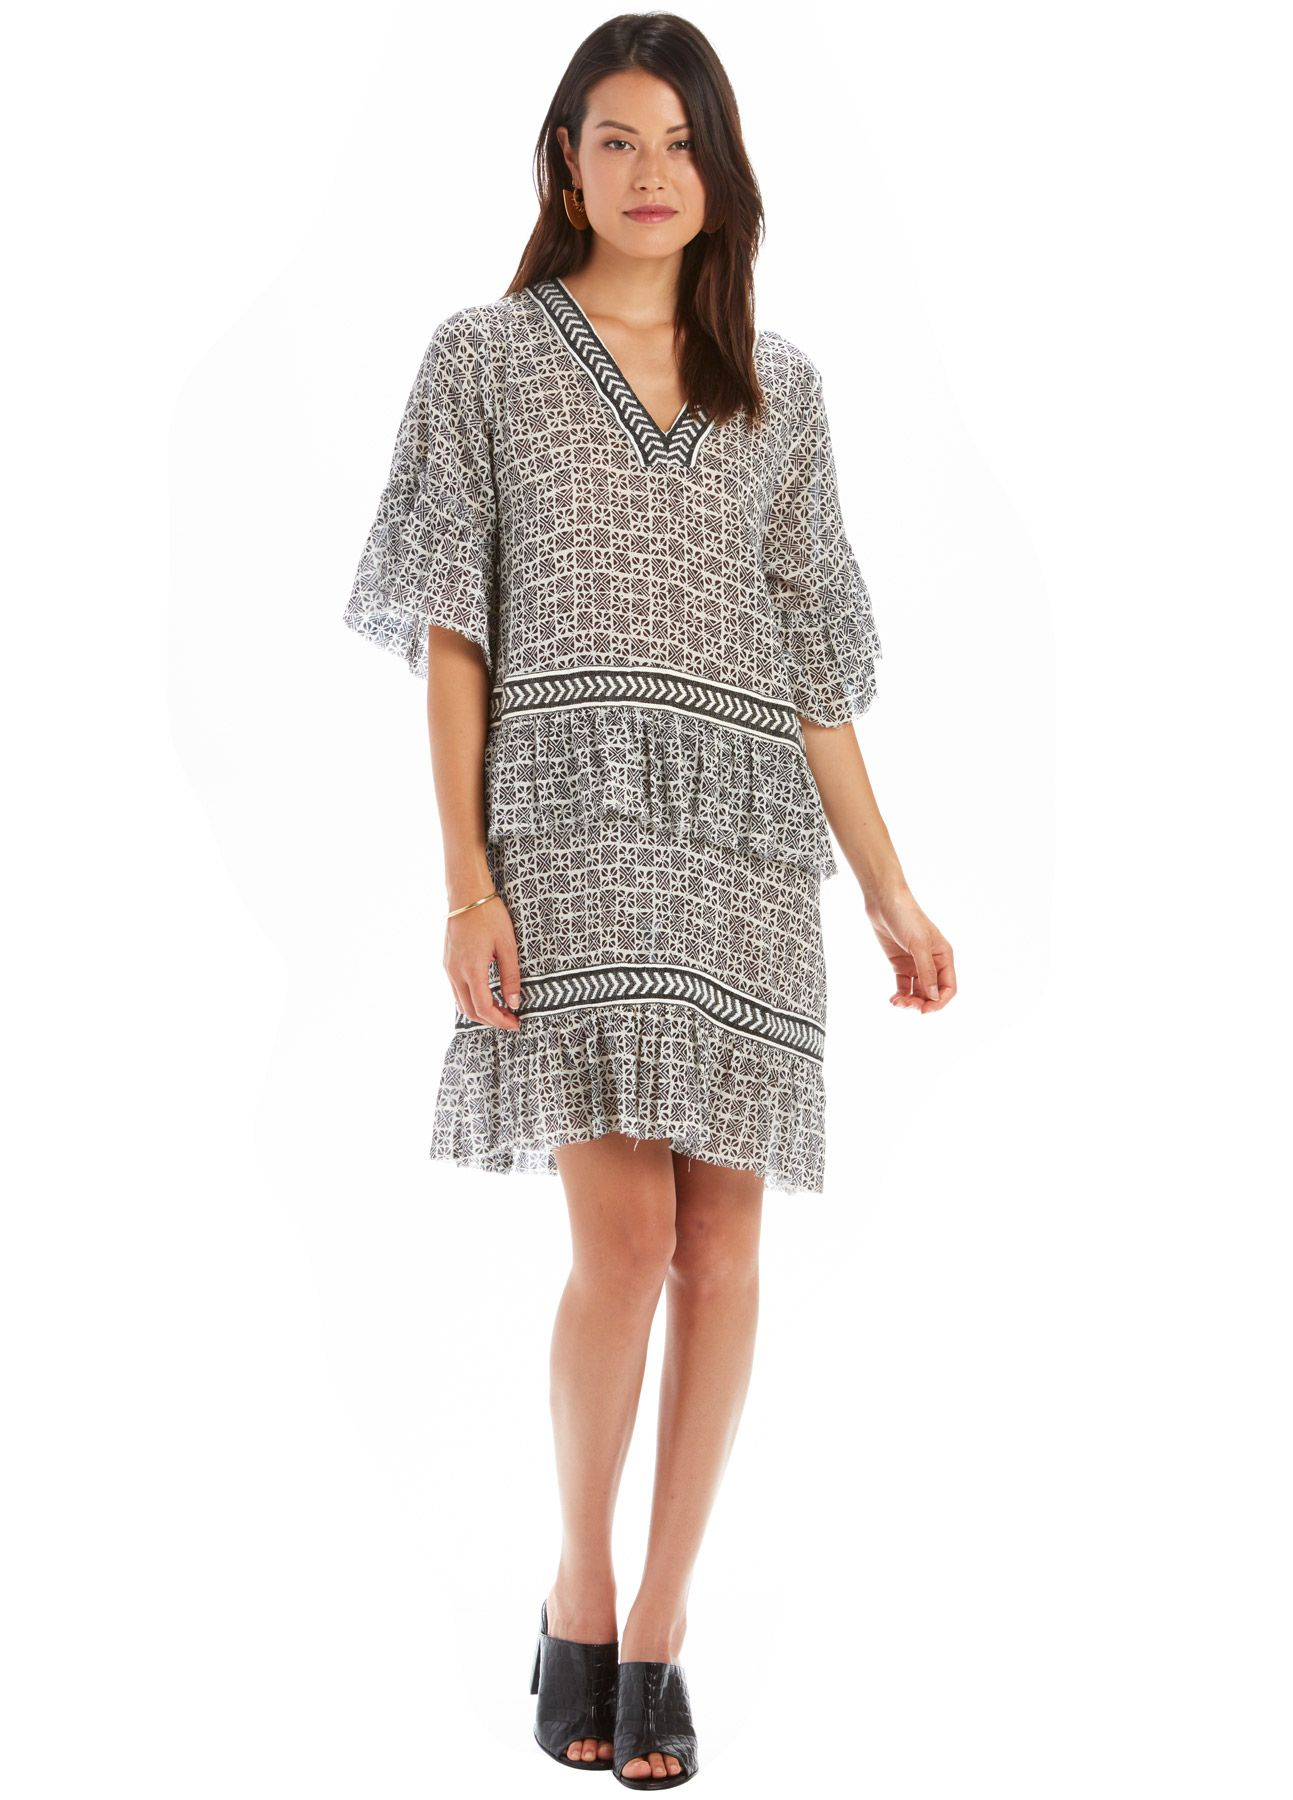 Lemlemus ukafau dress is cut from breathable cotton gauze patterned